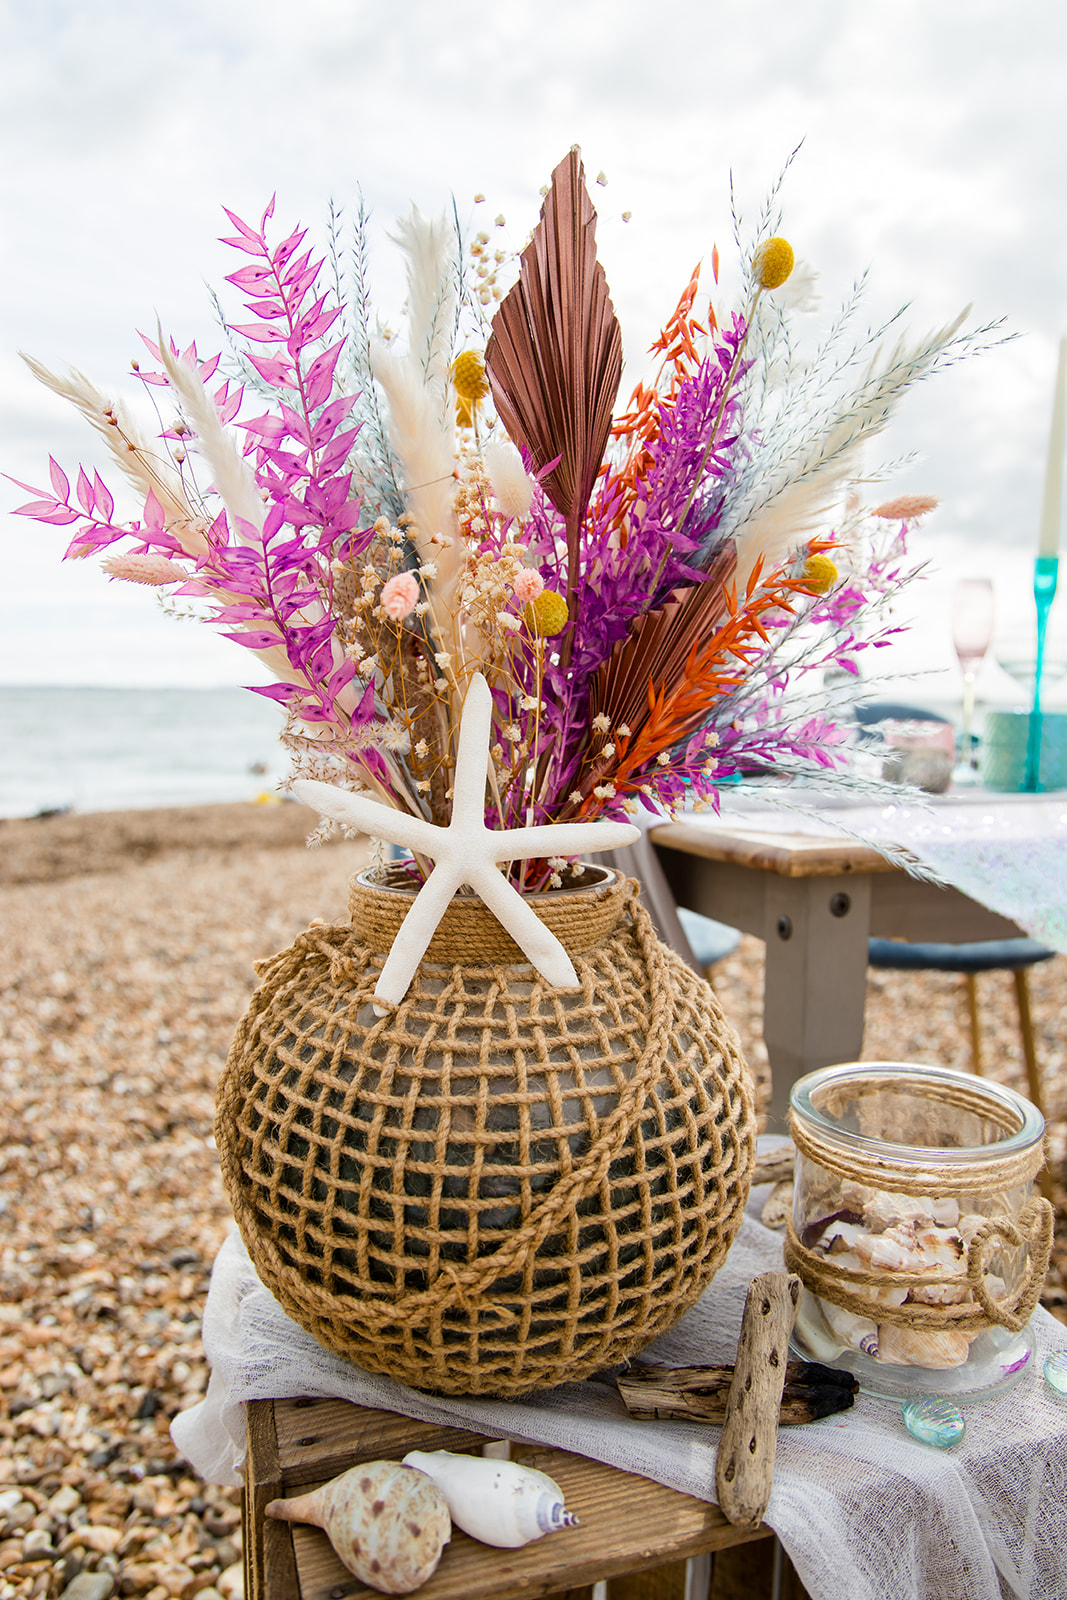 mermaid wedding - beach wedding - quirky wedding - unique wedding - alternative seaside wedding - alternative wedding - beach wedding flowers